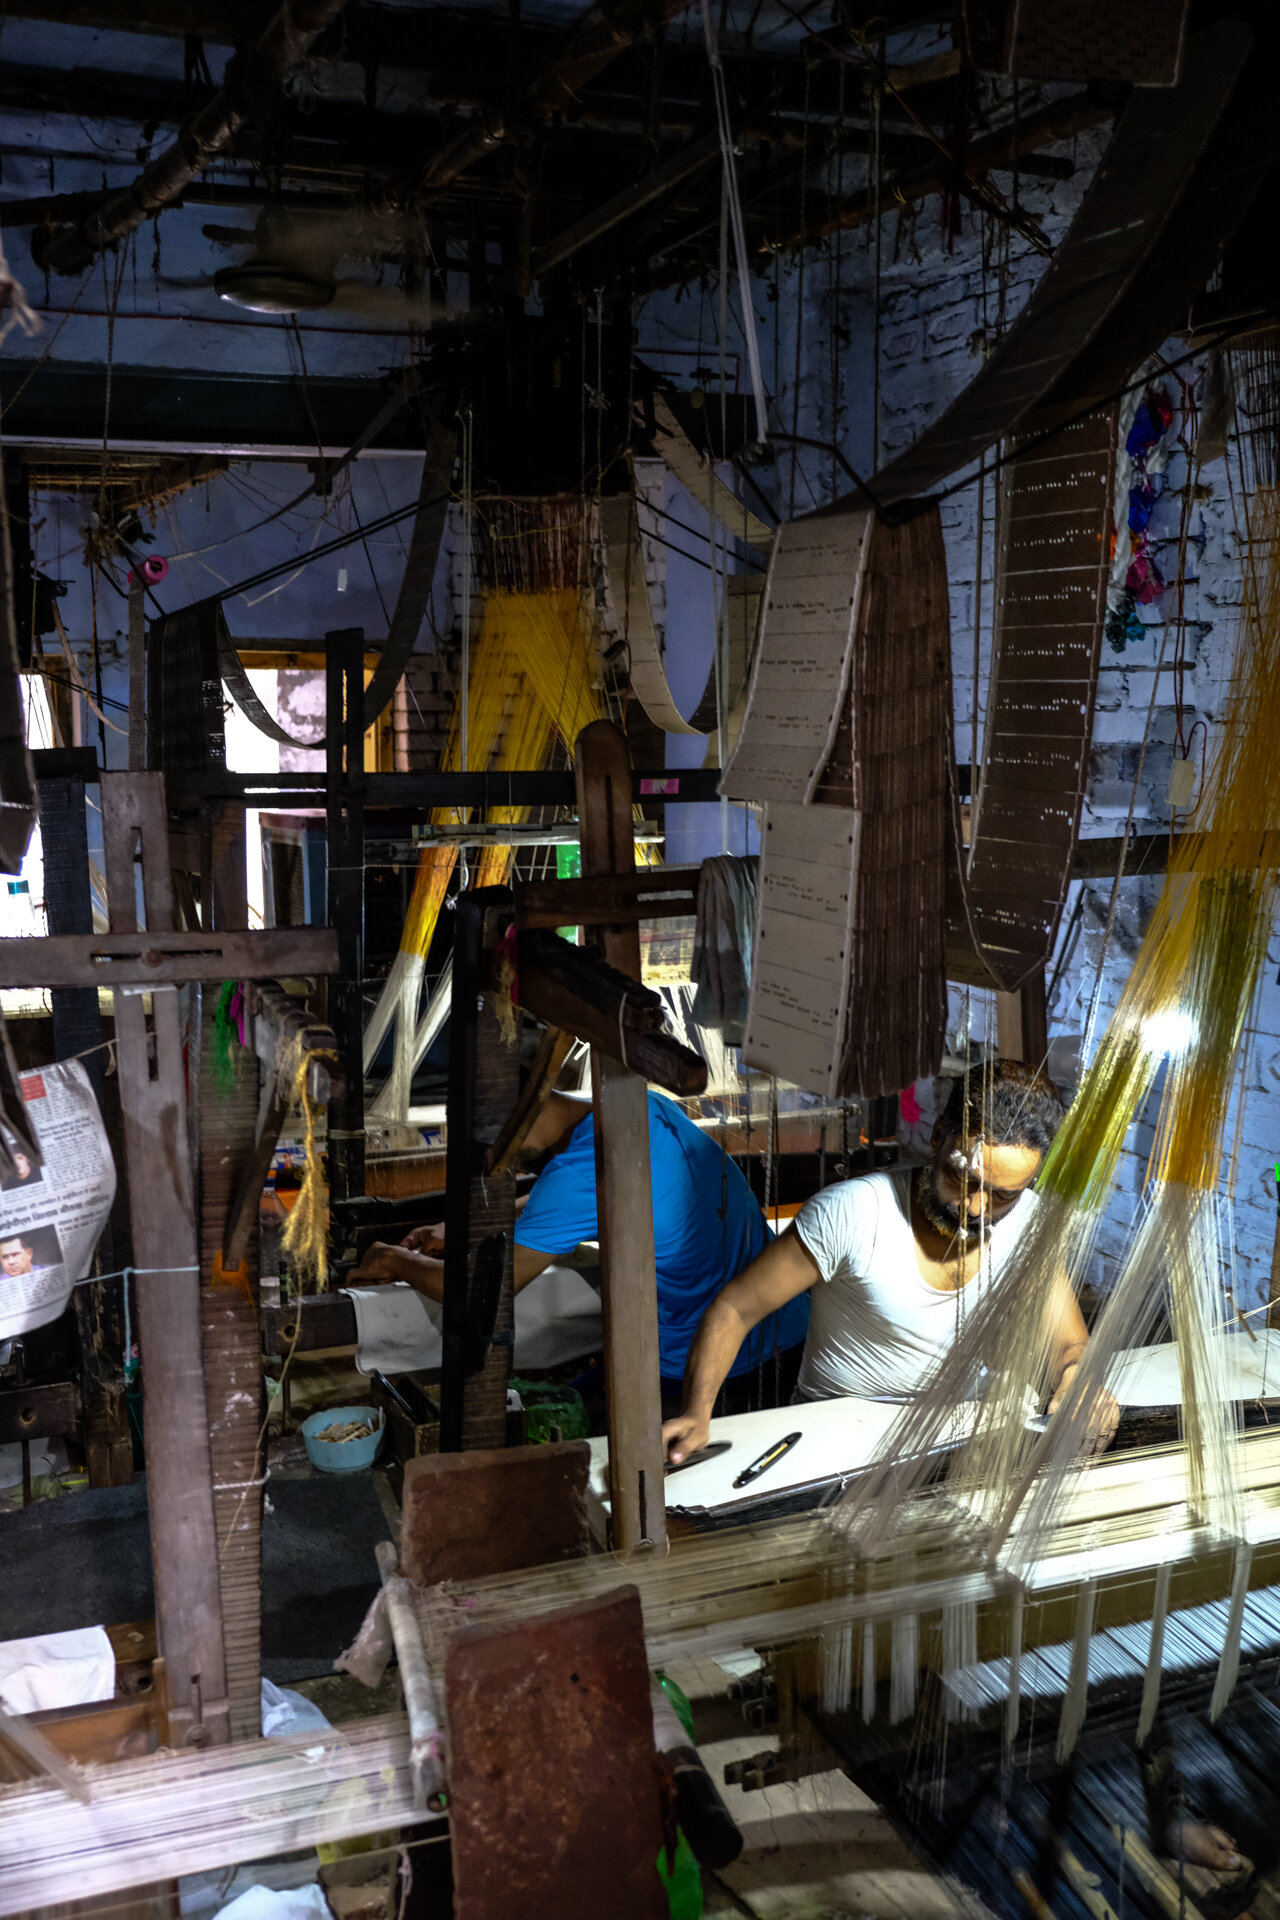 Punch-hole cards hanging over the loom